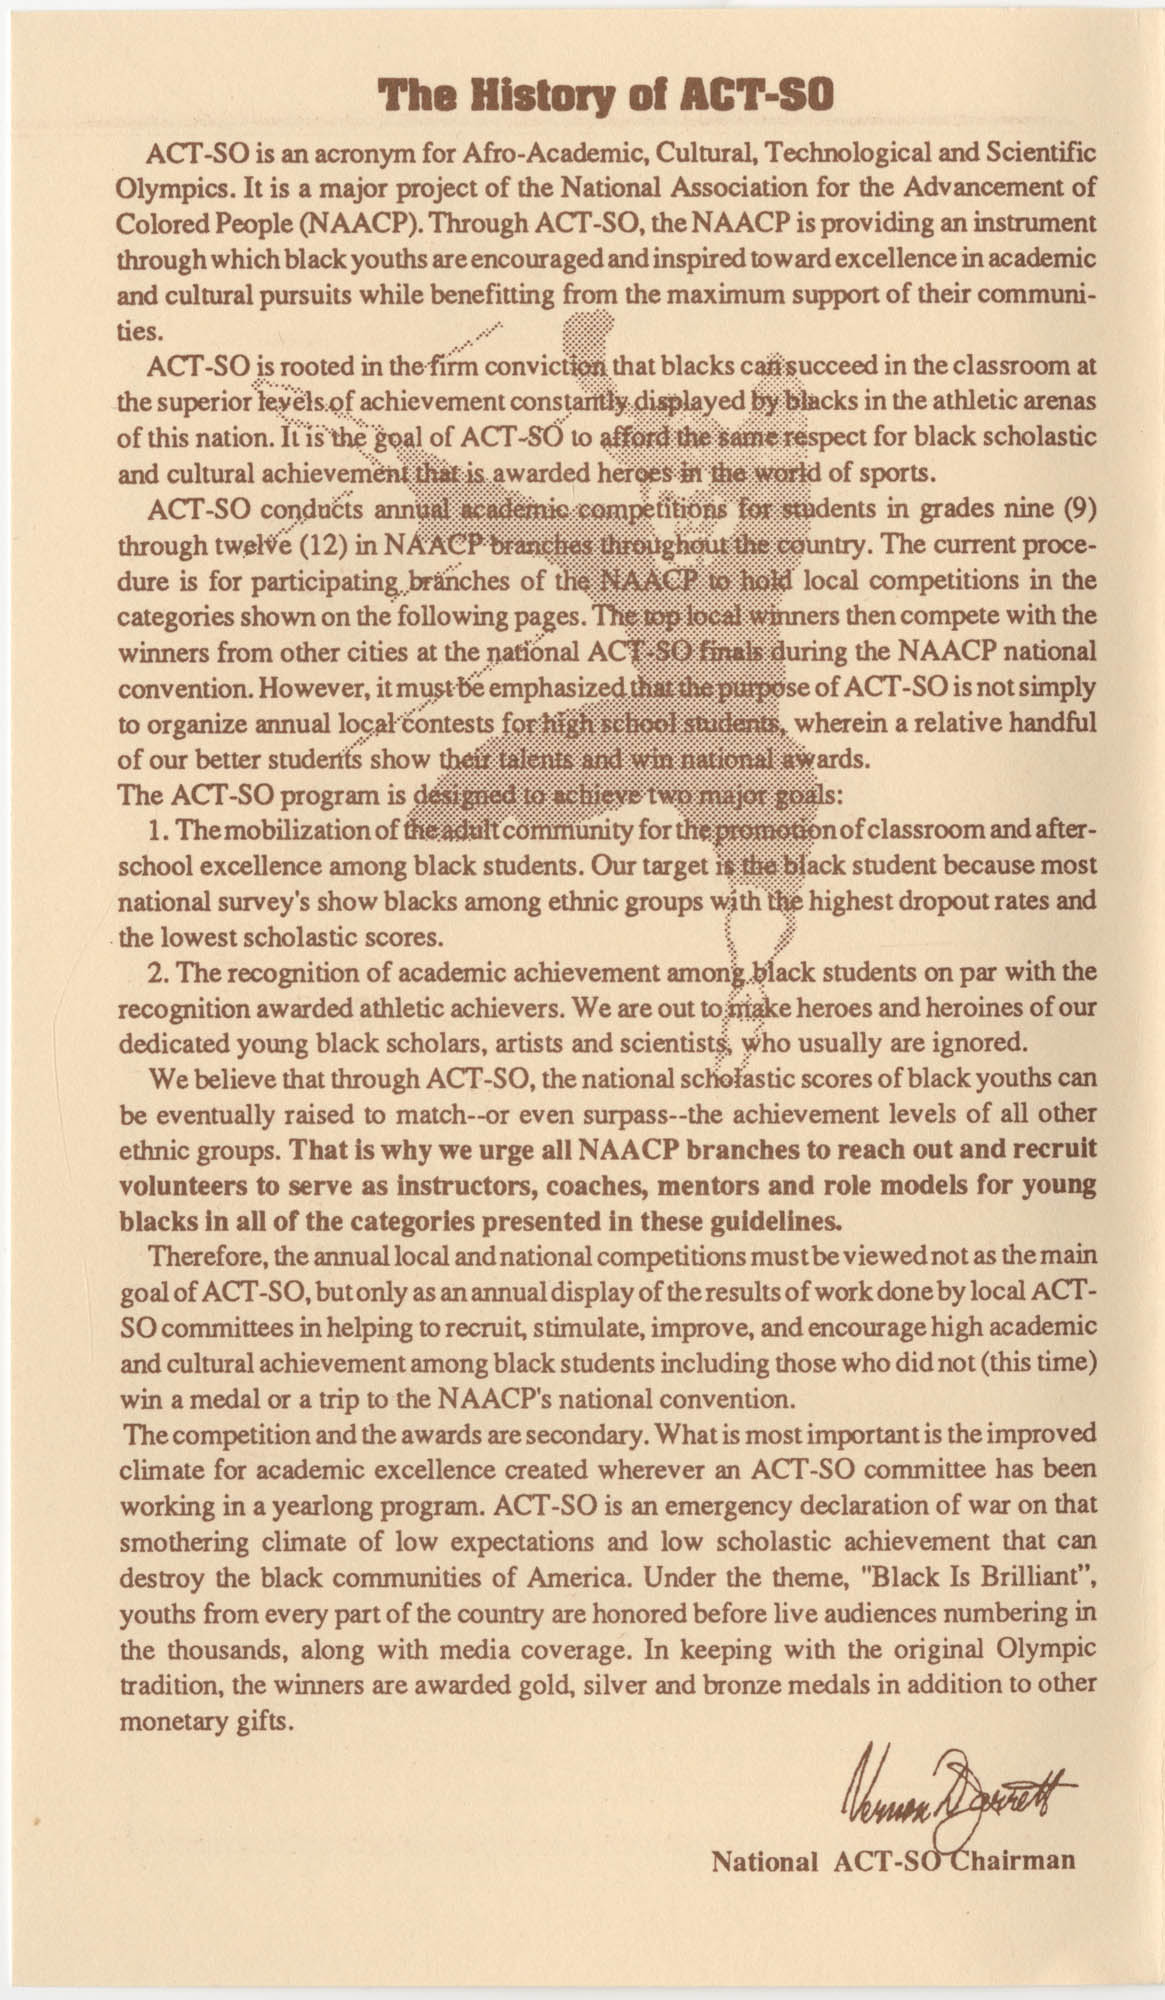 NAACP 17th Annual ACT-SO, July 8-11, 1994, Page 1